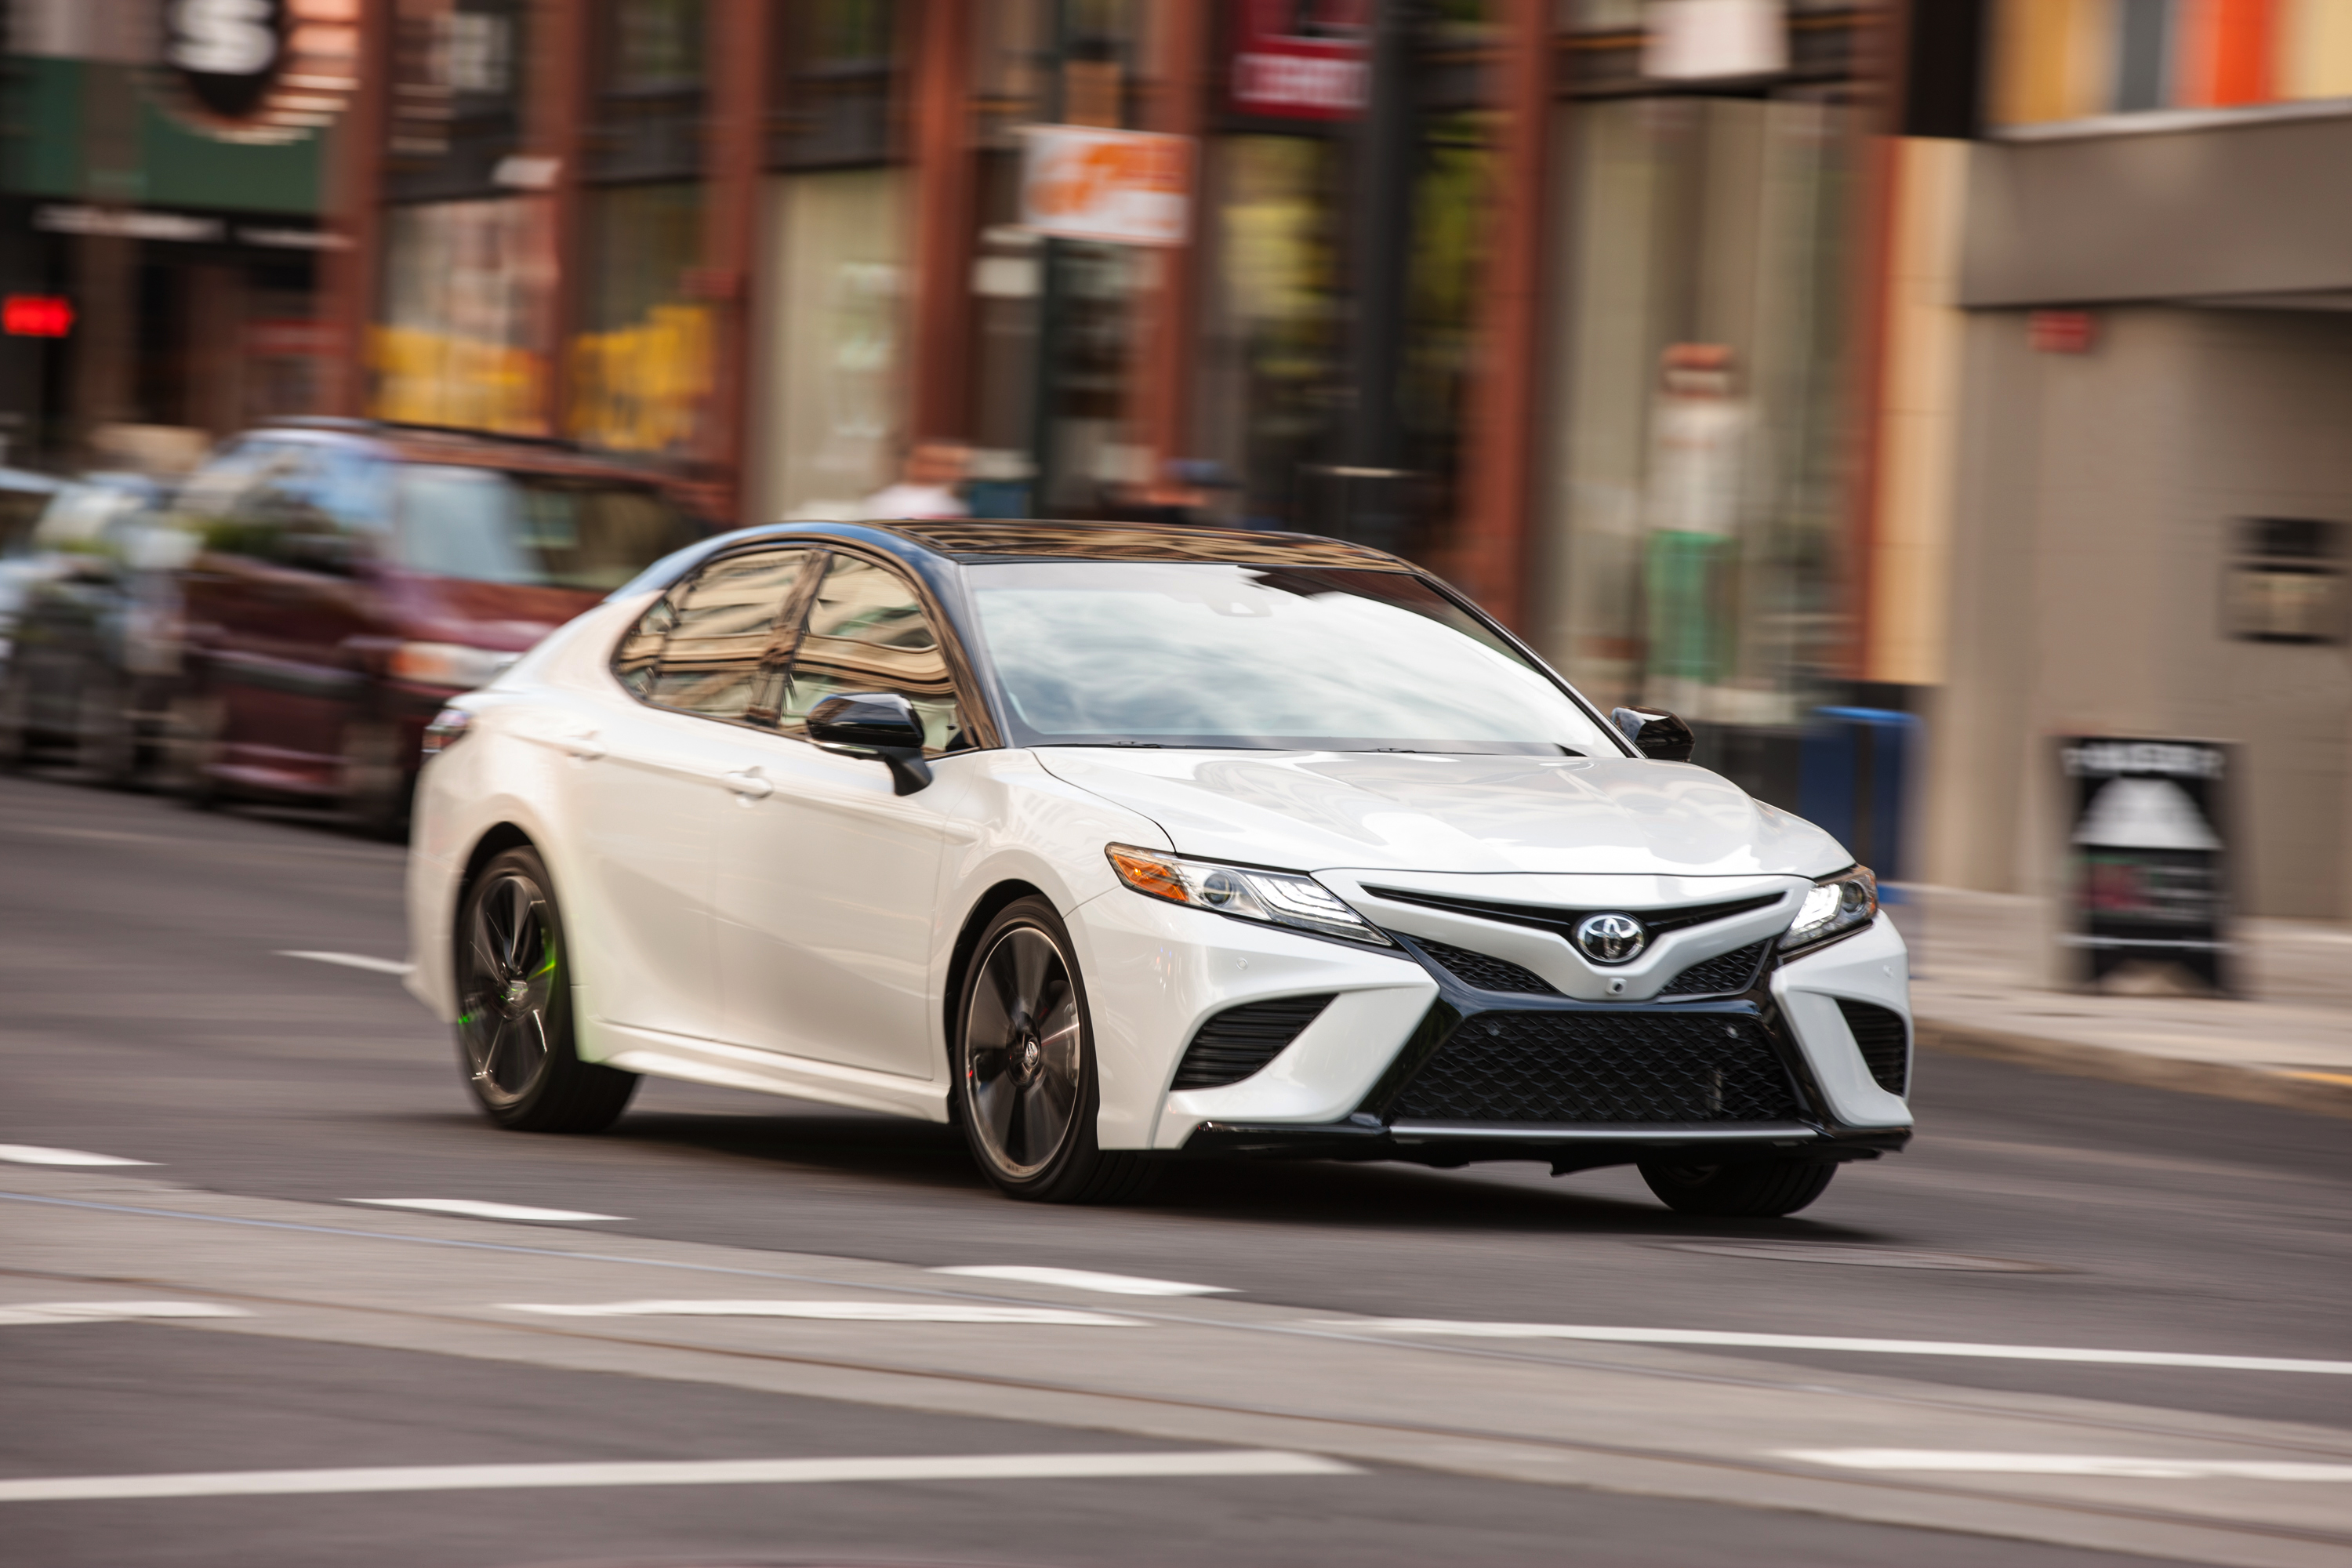 Toyota Camry: Correct driving posture